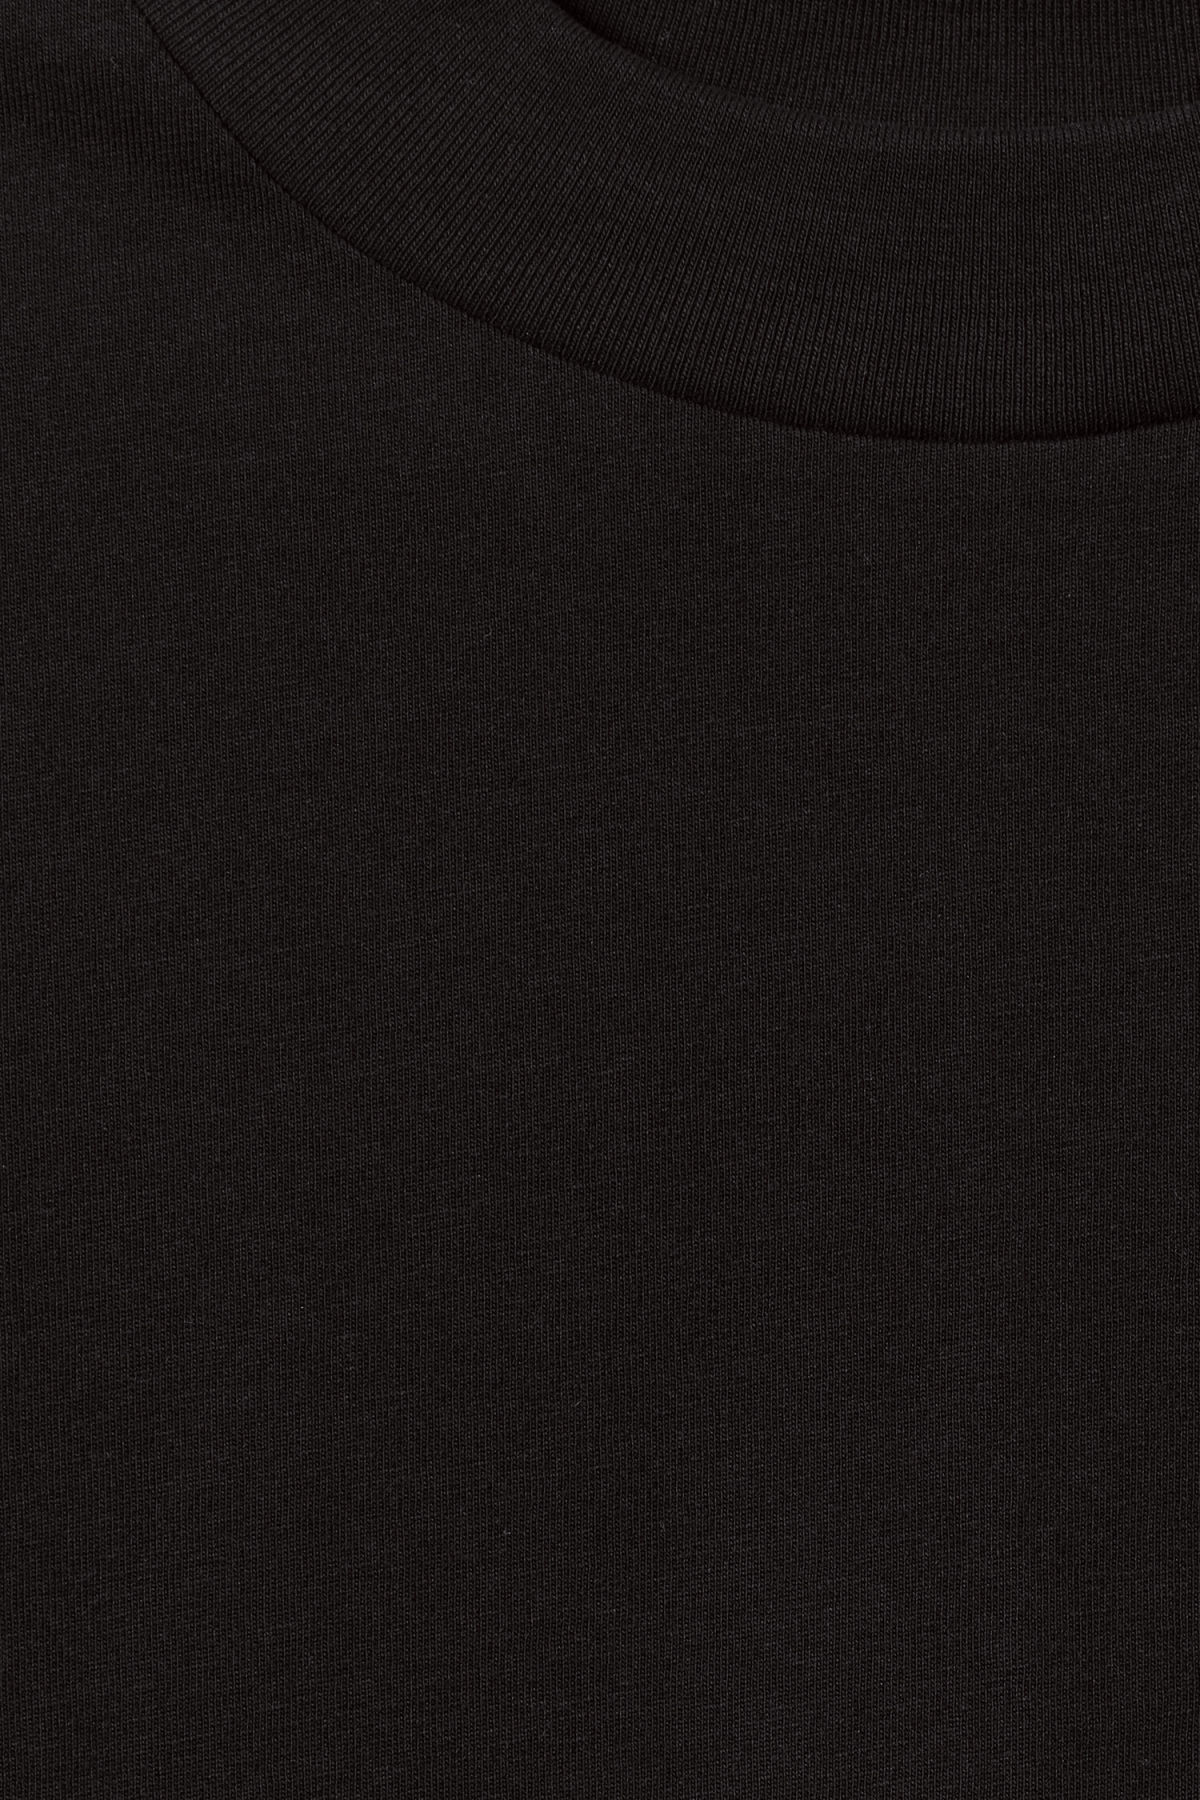 Detailed image of Weekday prime t-shirt in black